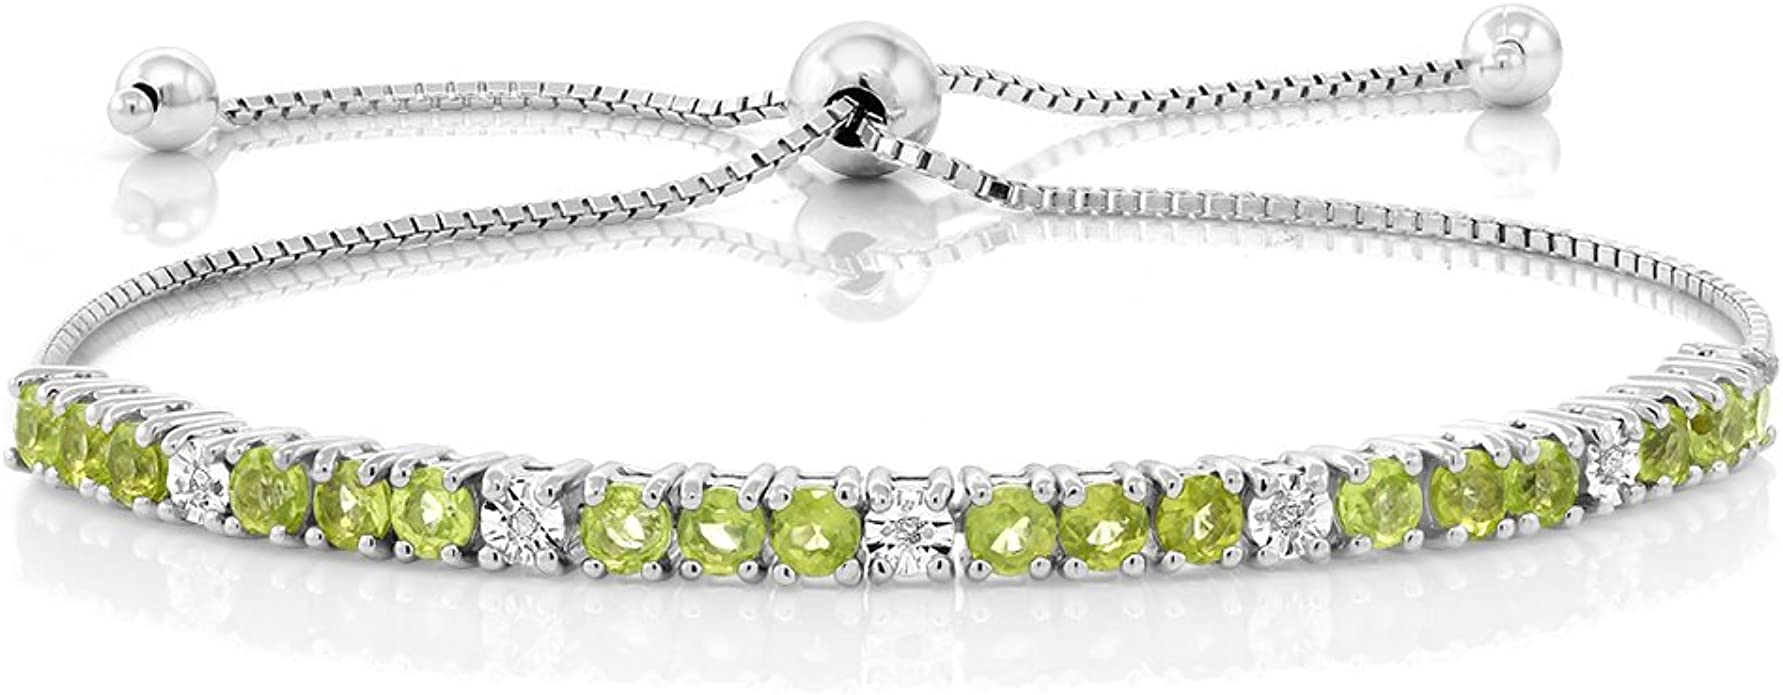 Details about  /4mm Round Cut Natural Peridot Gemstone Sterling 925 Silver Tennis Bracelet